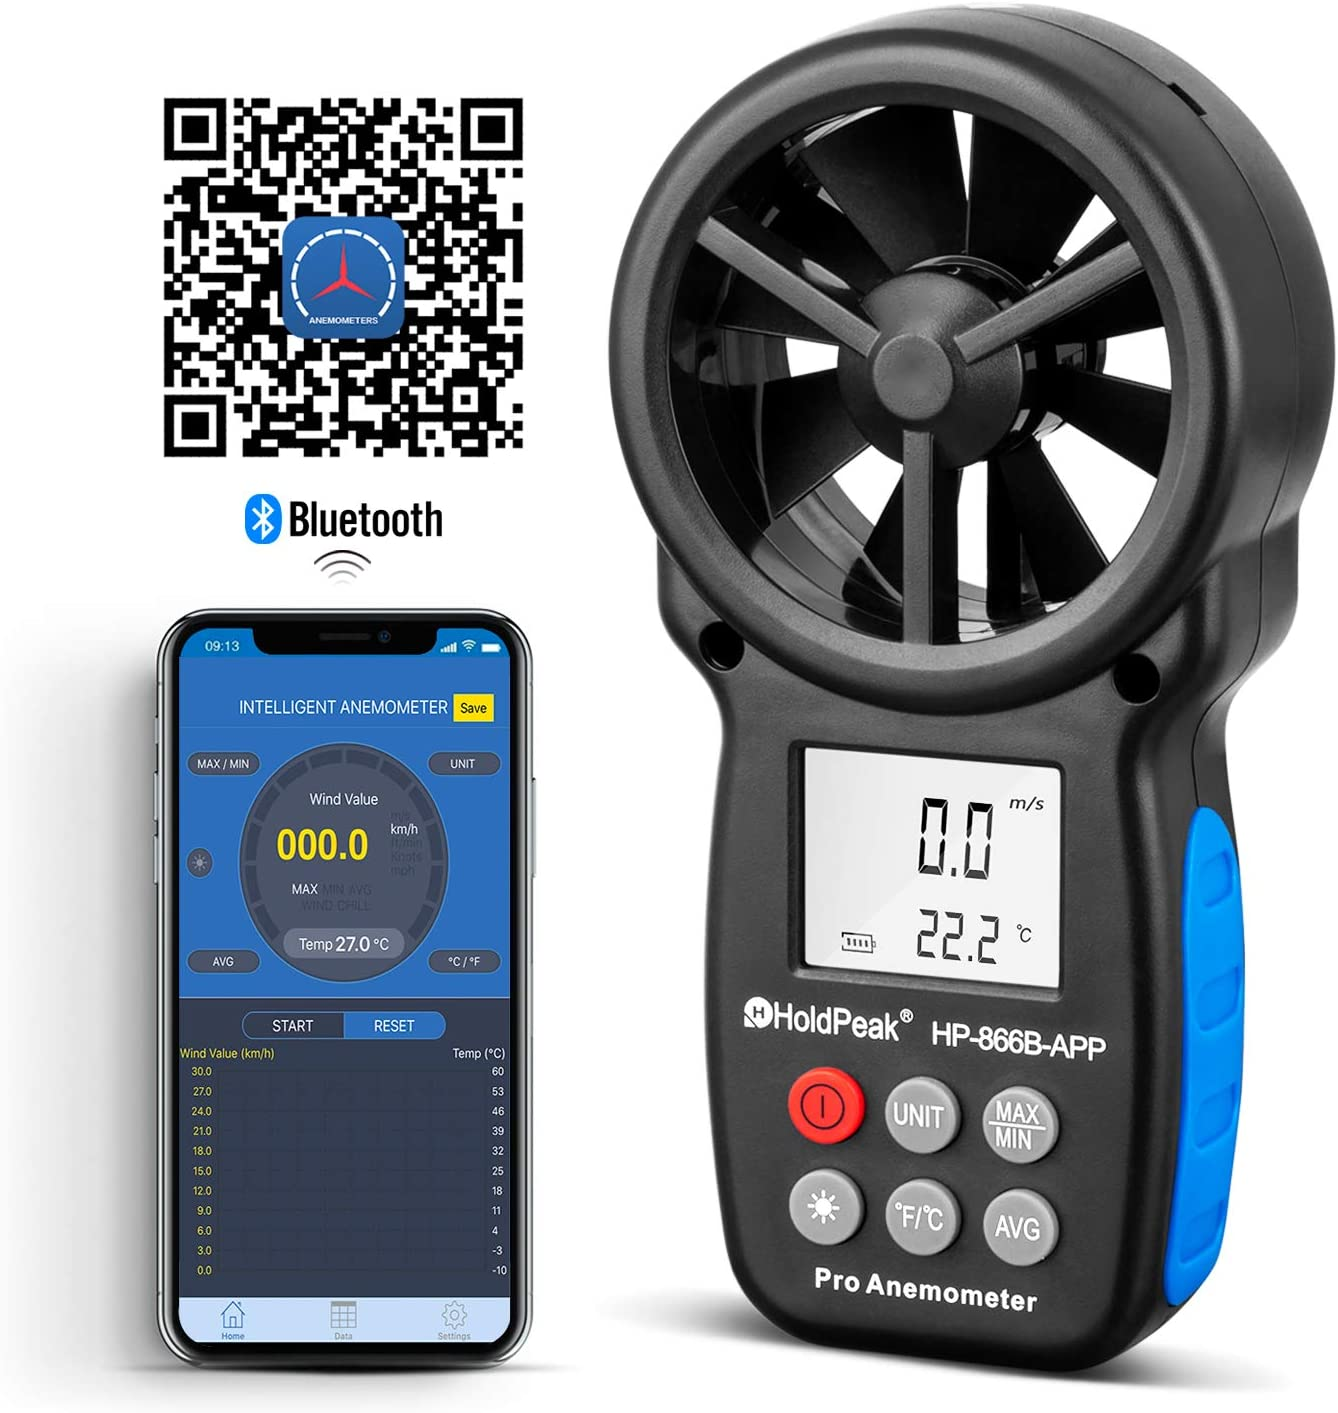 HOLDPEAK HP-866B-APP Digital Anemometer Handheld APP with Wireless Bluetooth Vane Wind Speed Meter for Measuring Wind Speed, Temperature, Wind Chill with Backlight (Black)